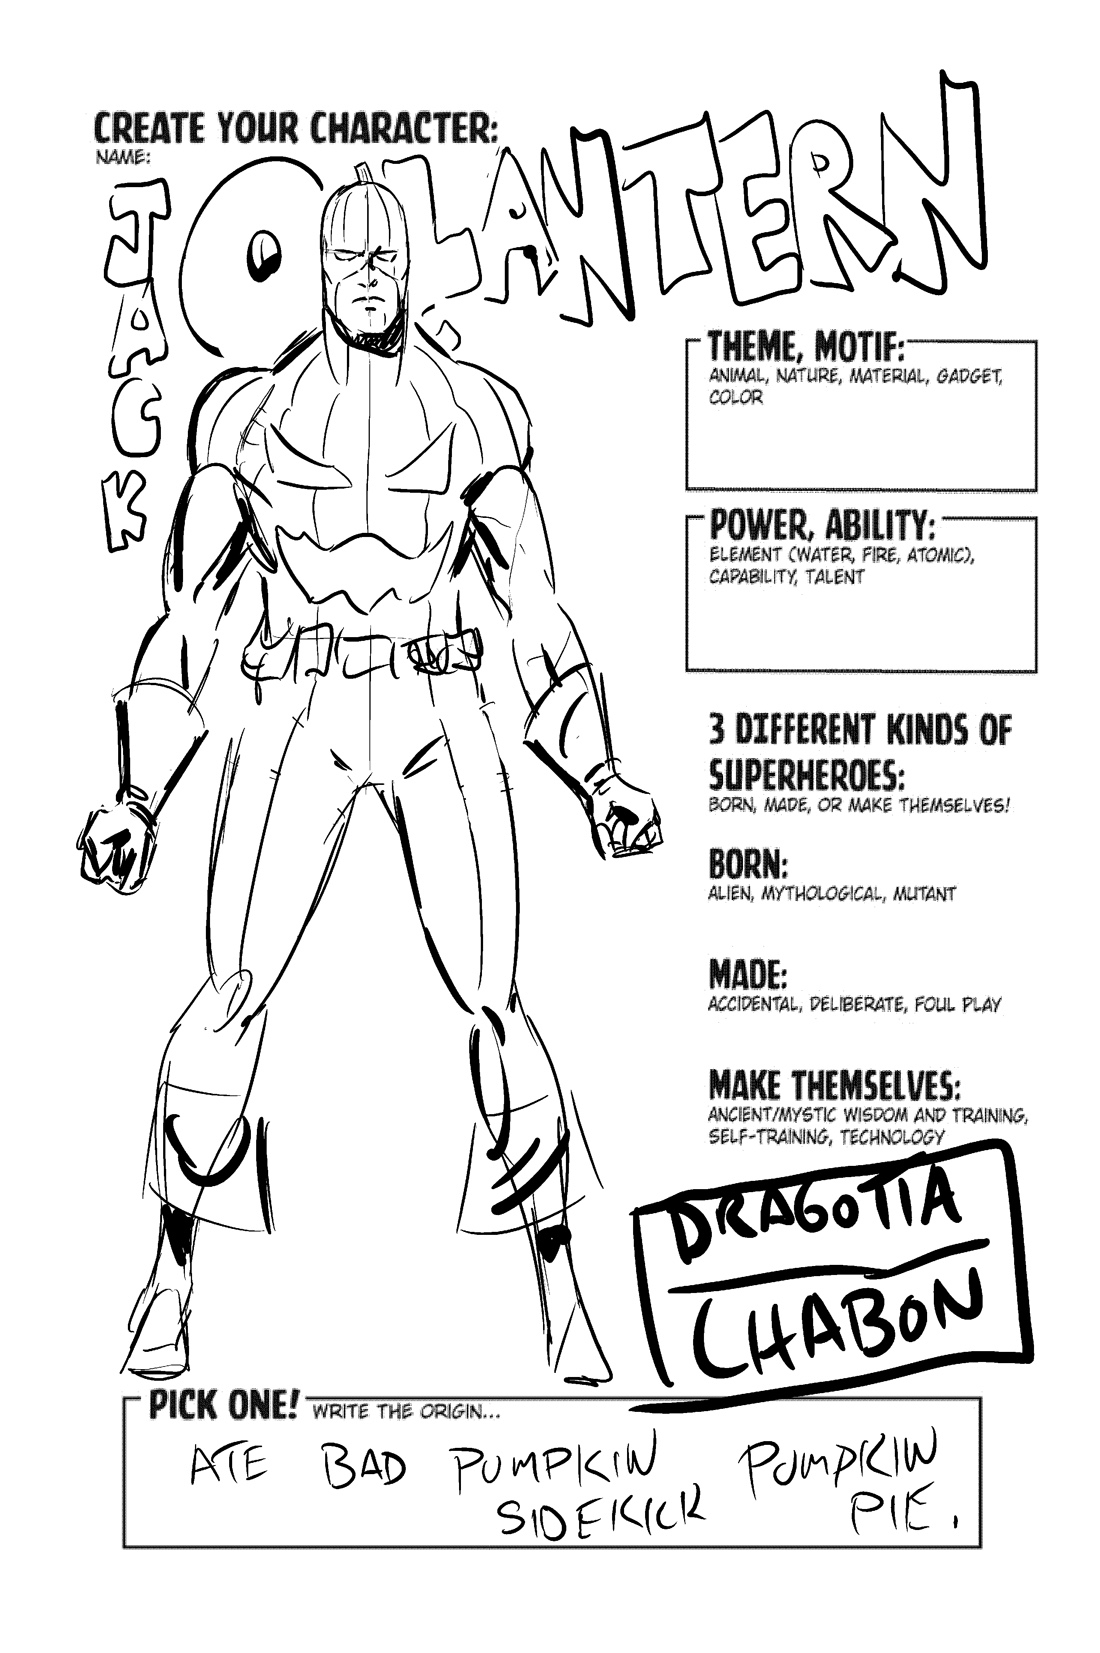 15 Best Images Of Create A Superhero Worksheet